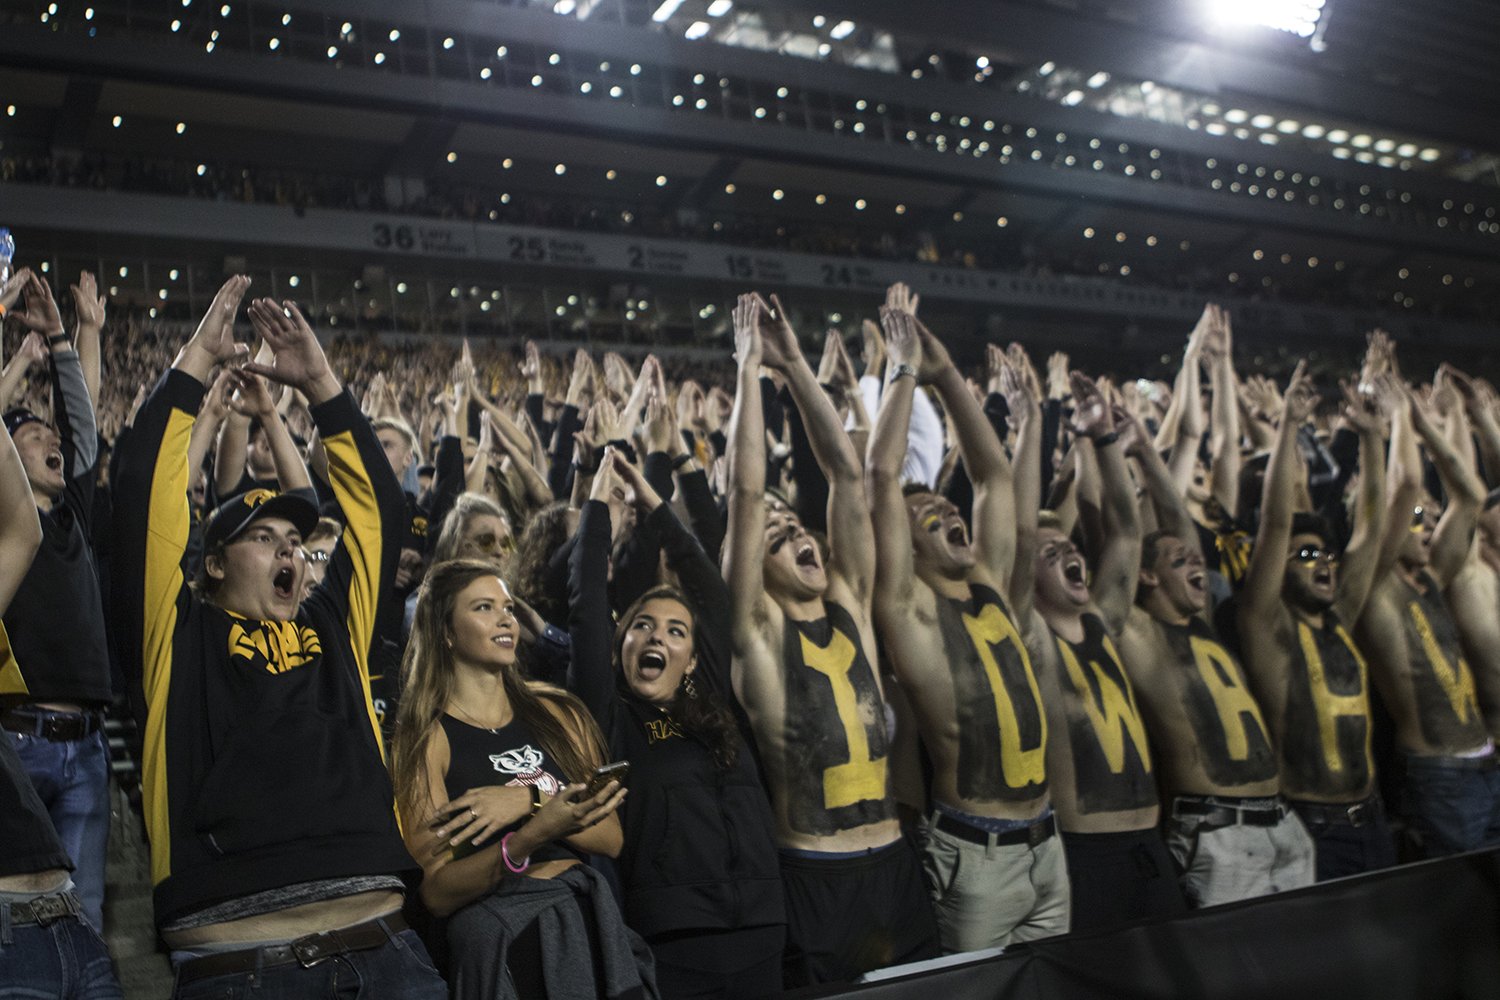 Iowa+fans+put+up+the+%22I%22+during+a+football+game+between+Iowa+and+Wisconsin+on+Saturday%2C+September+22%2C+2018.+The+Badgers+defeated+the+Hawkeyes%2C+28-17.+%28Shivansh+Ahuja%2FThe+Daily+Iowan%29